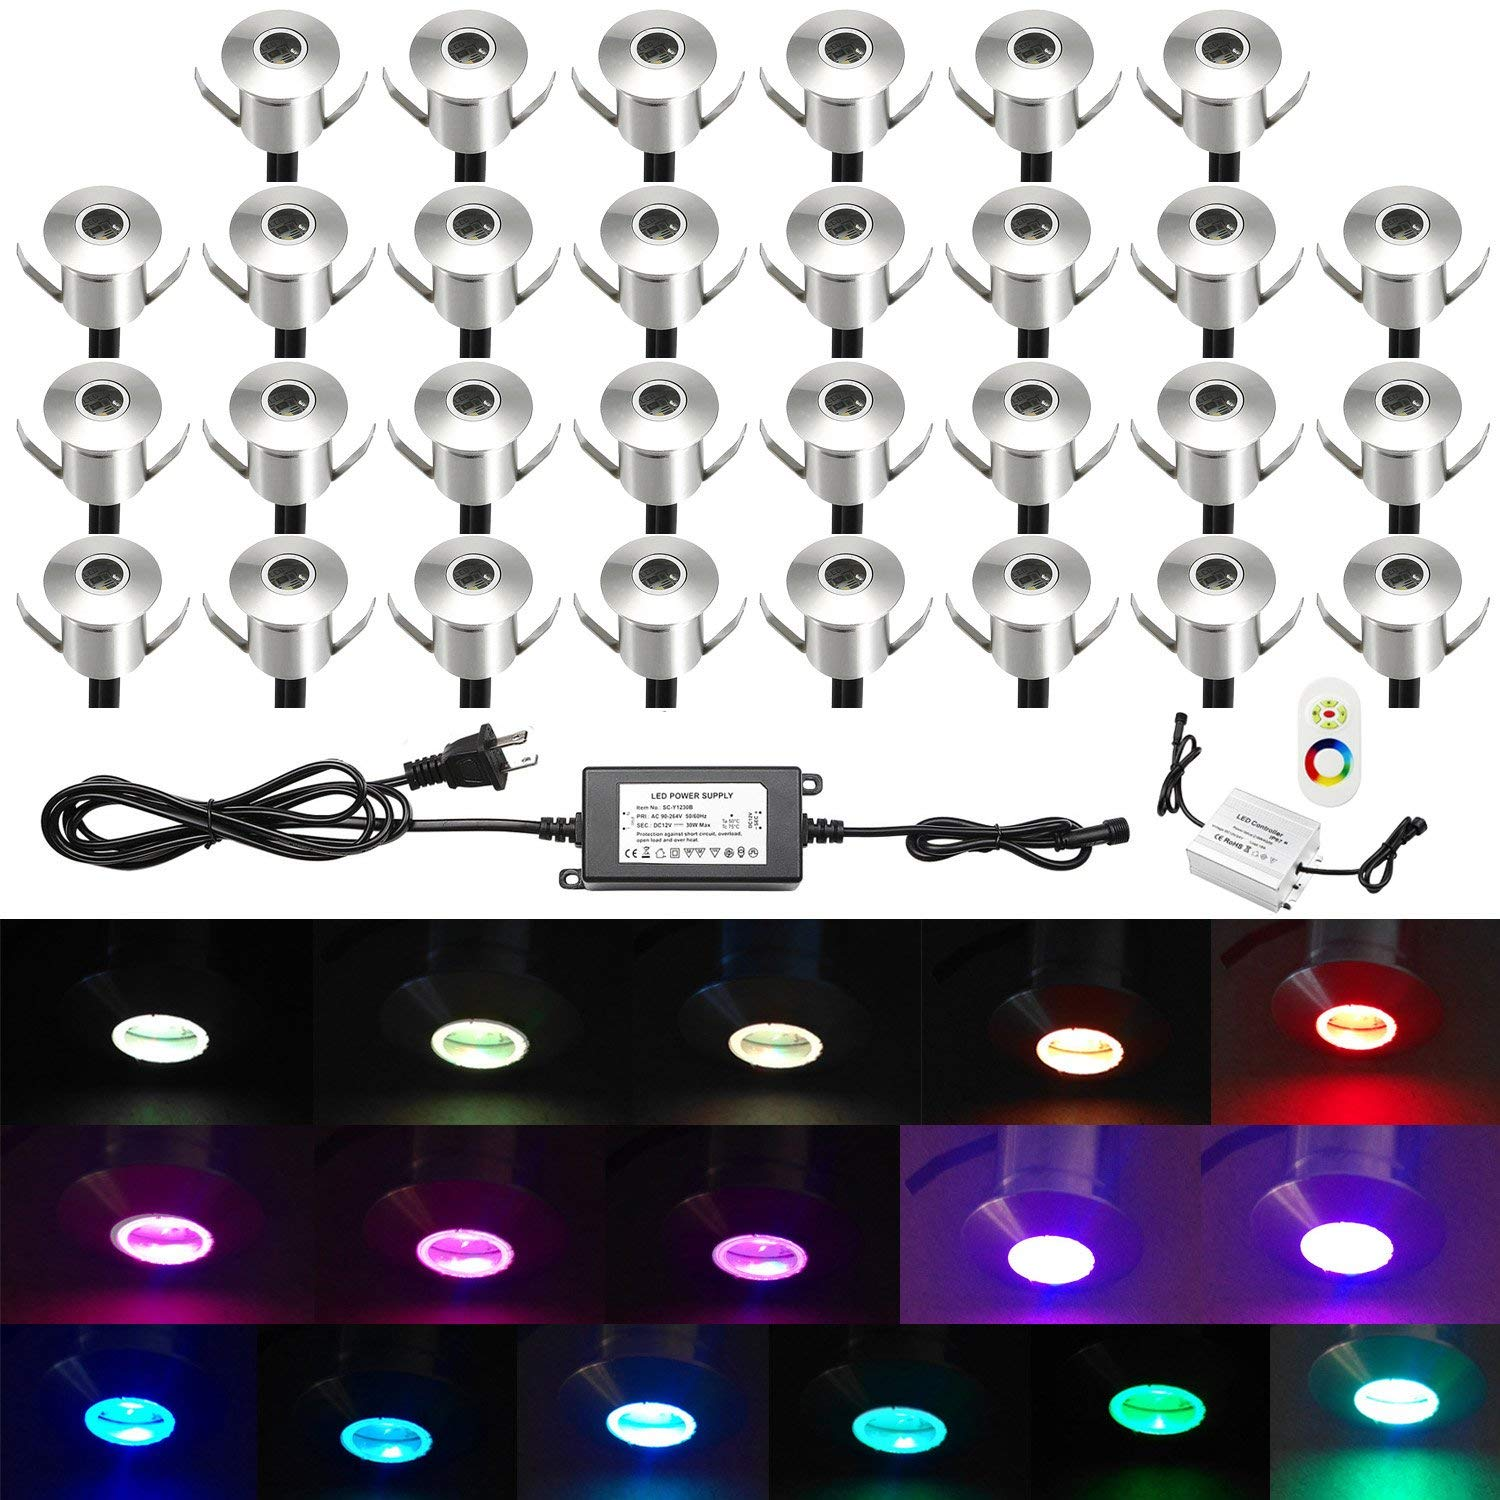 Low Voltage Stair Lights Outdoor, QACA Deck Lighting Kits Waterproof IP67 In-Ground Lights for Steps Stair Patio Floor Pool Deck Kitchen Outdoor Led Landscape Lighting (30Pcs,RGB)